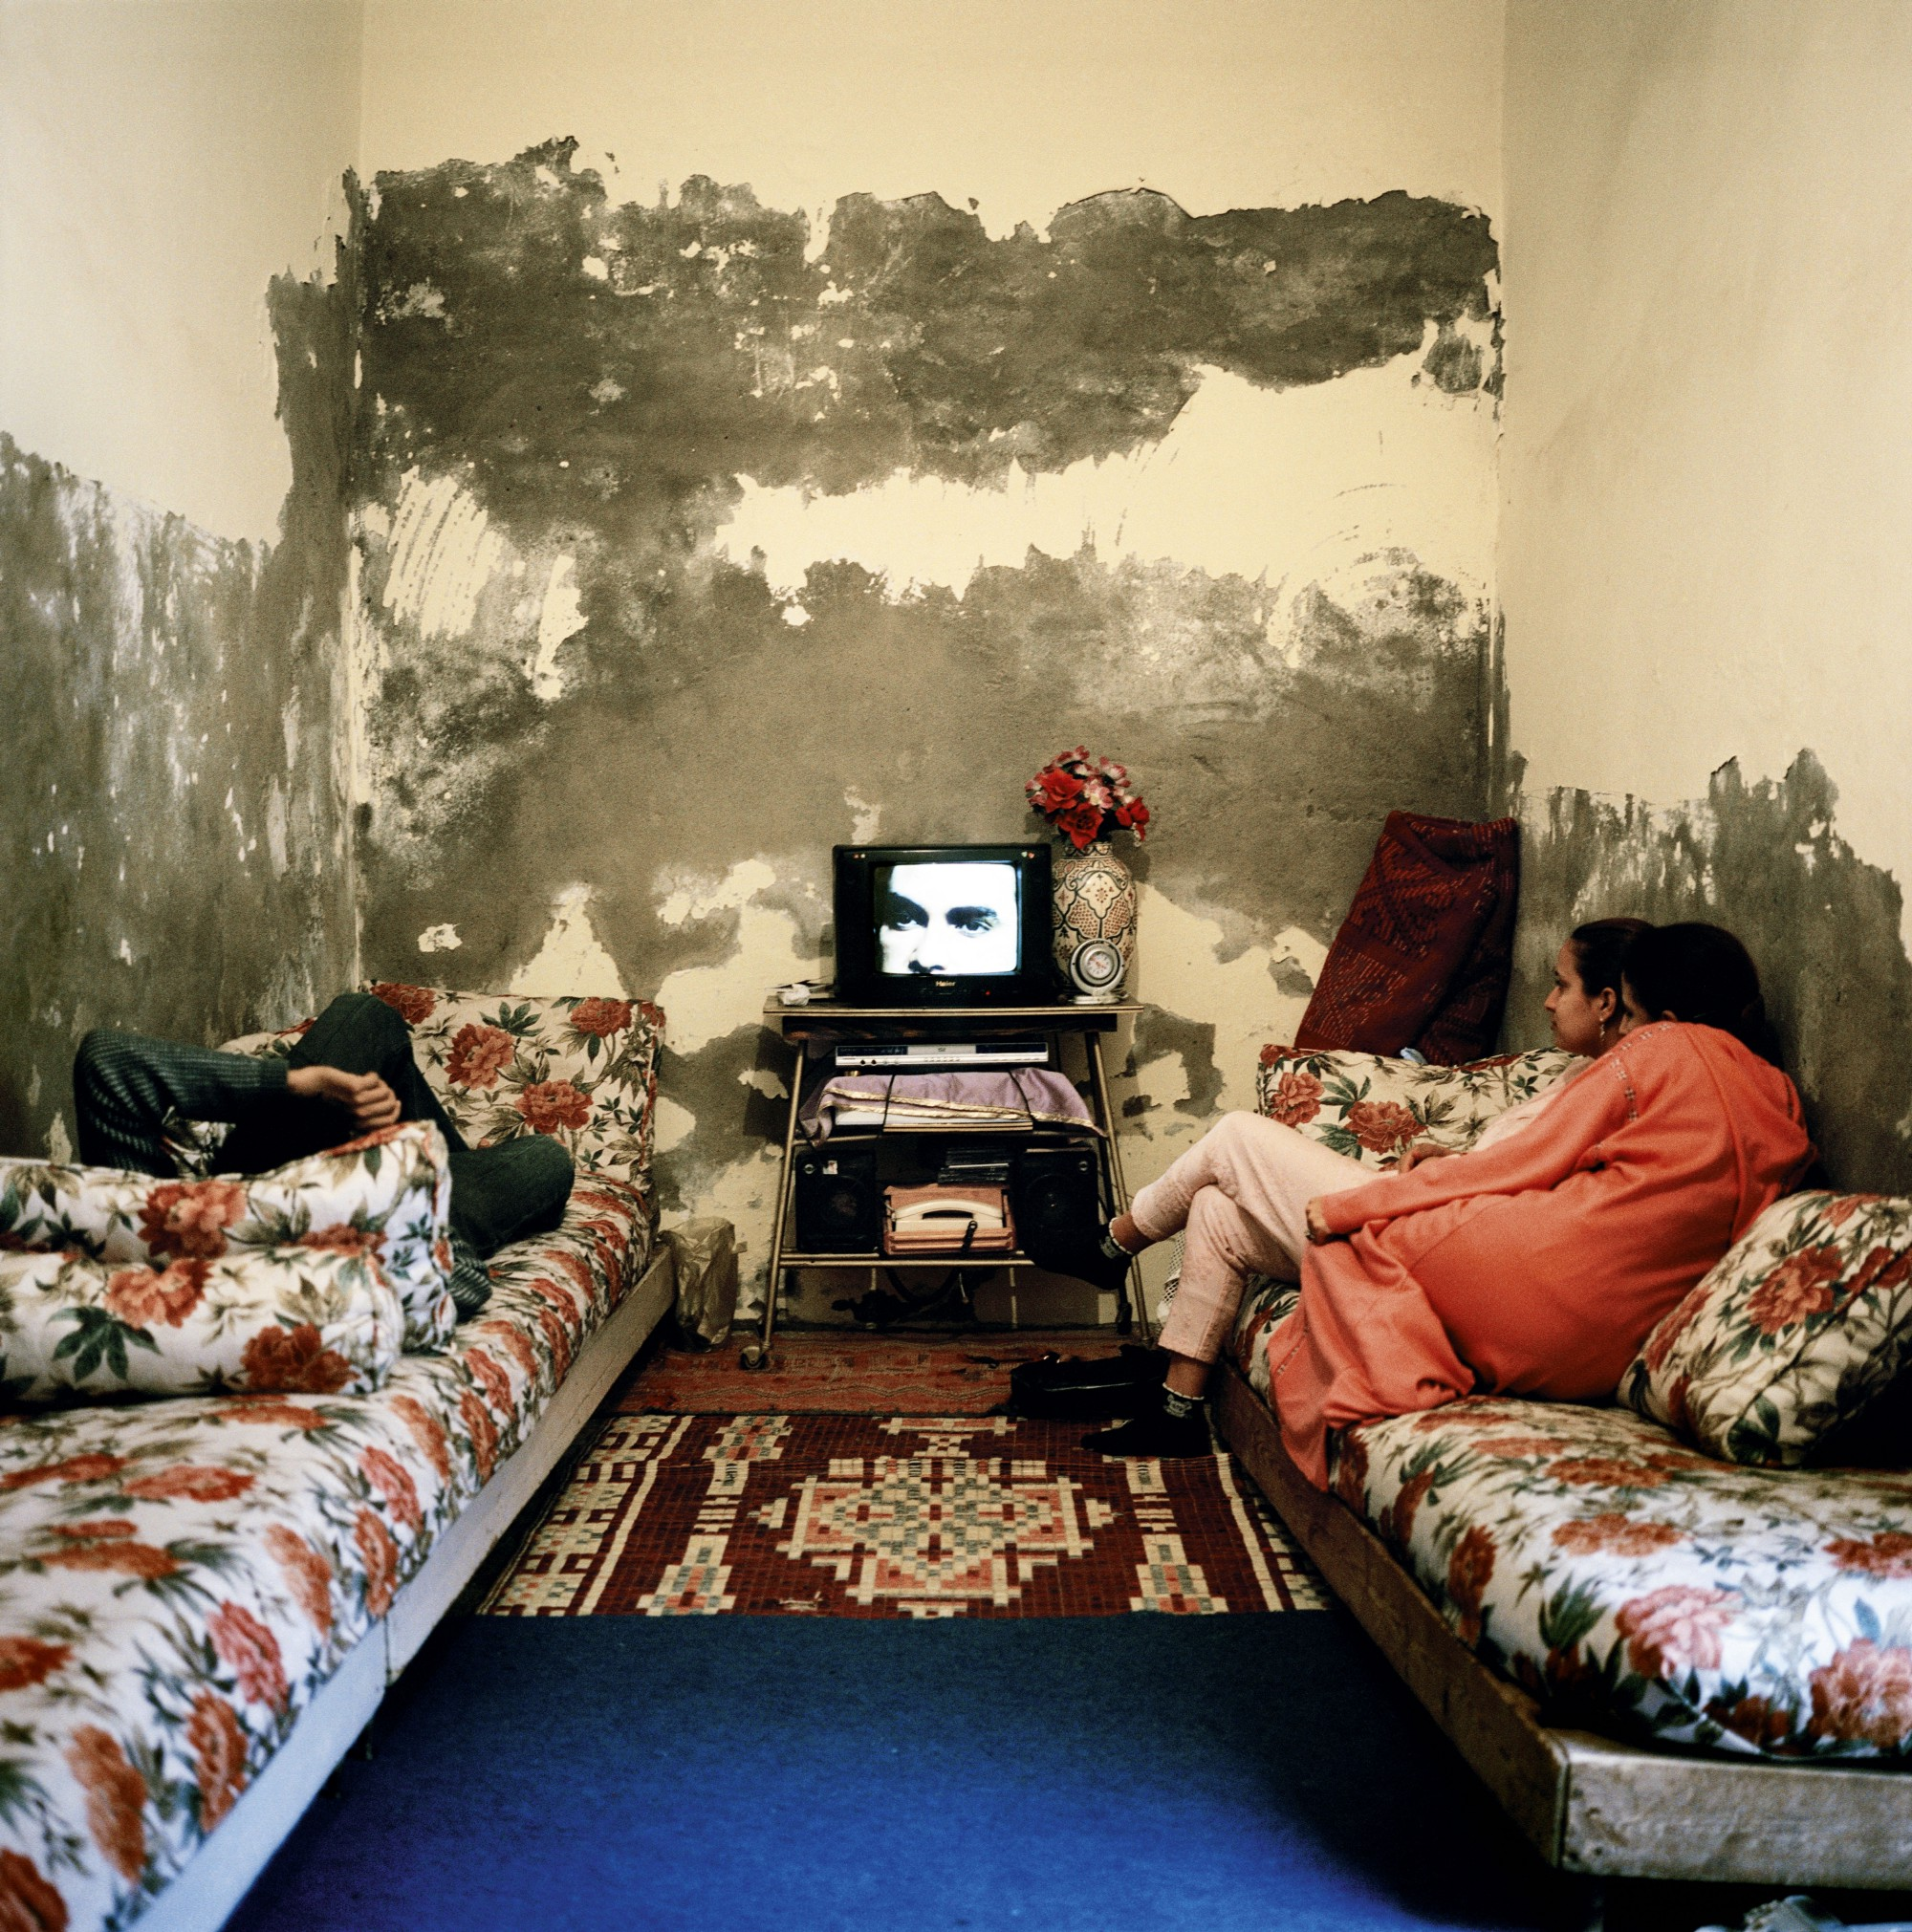 essay on tv an idiot box Idiot box essays in the article titled  television addiction, marie winn argues that tv viewing is comparable to alcoholism and drug addiction in terms of its negative effects on human.